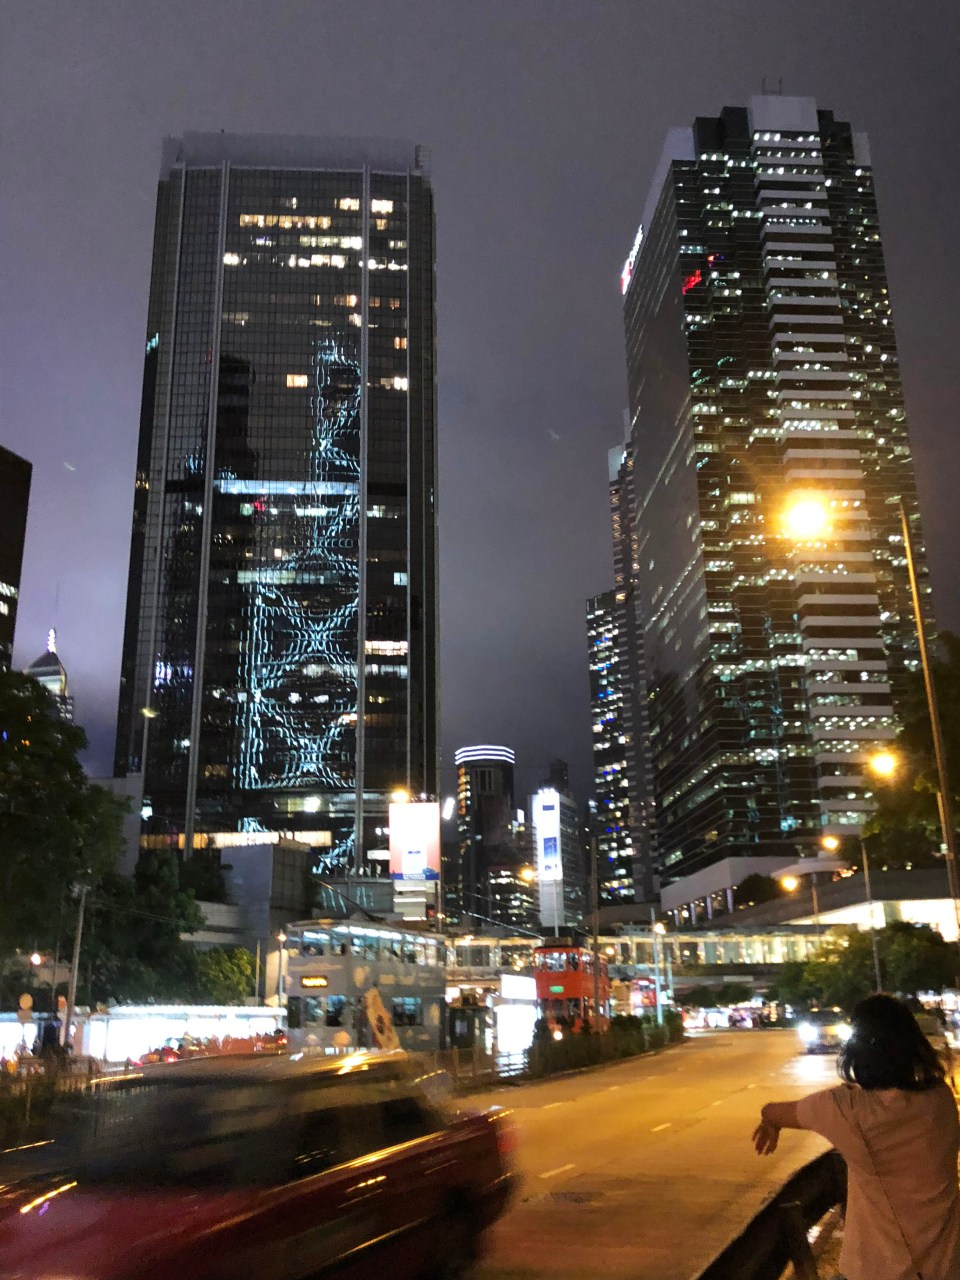 Hong Kong - Central at night